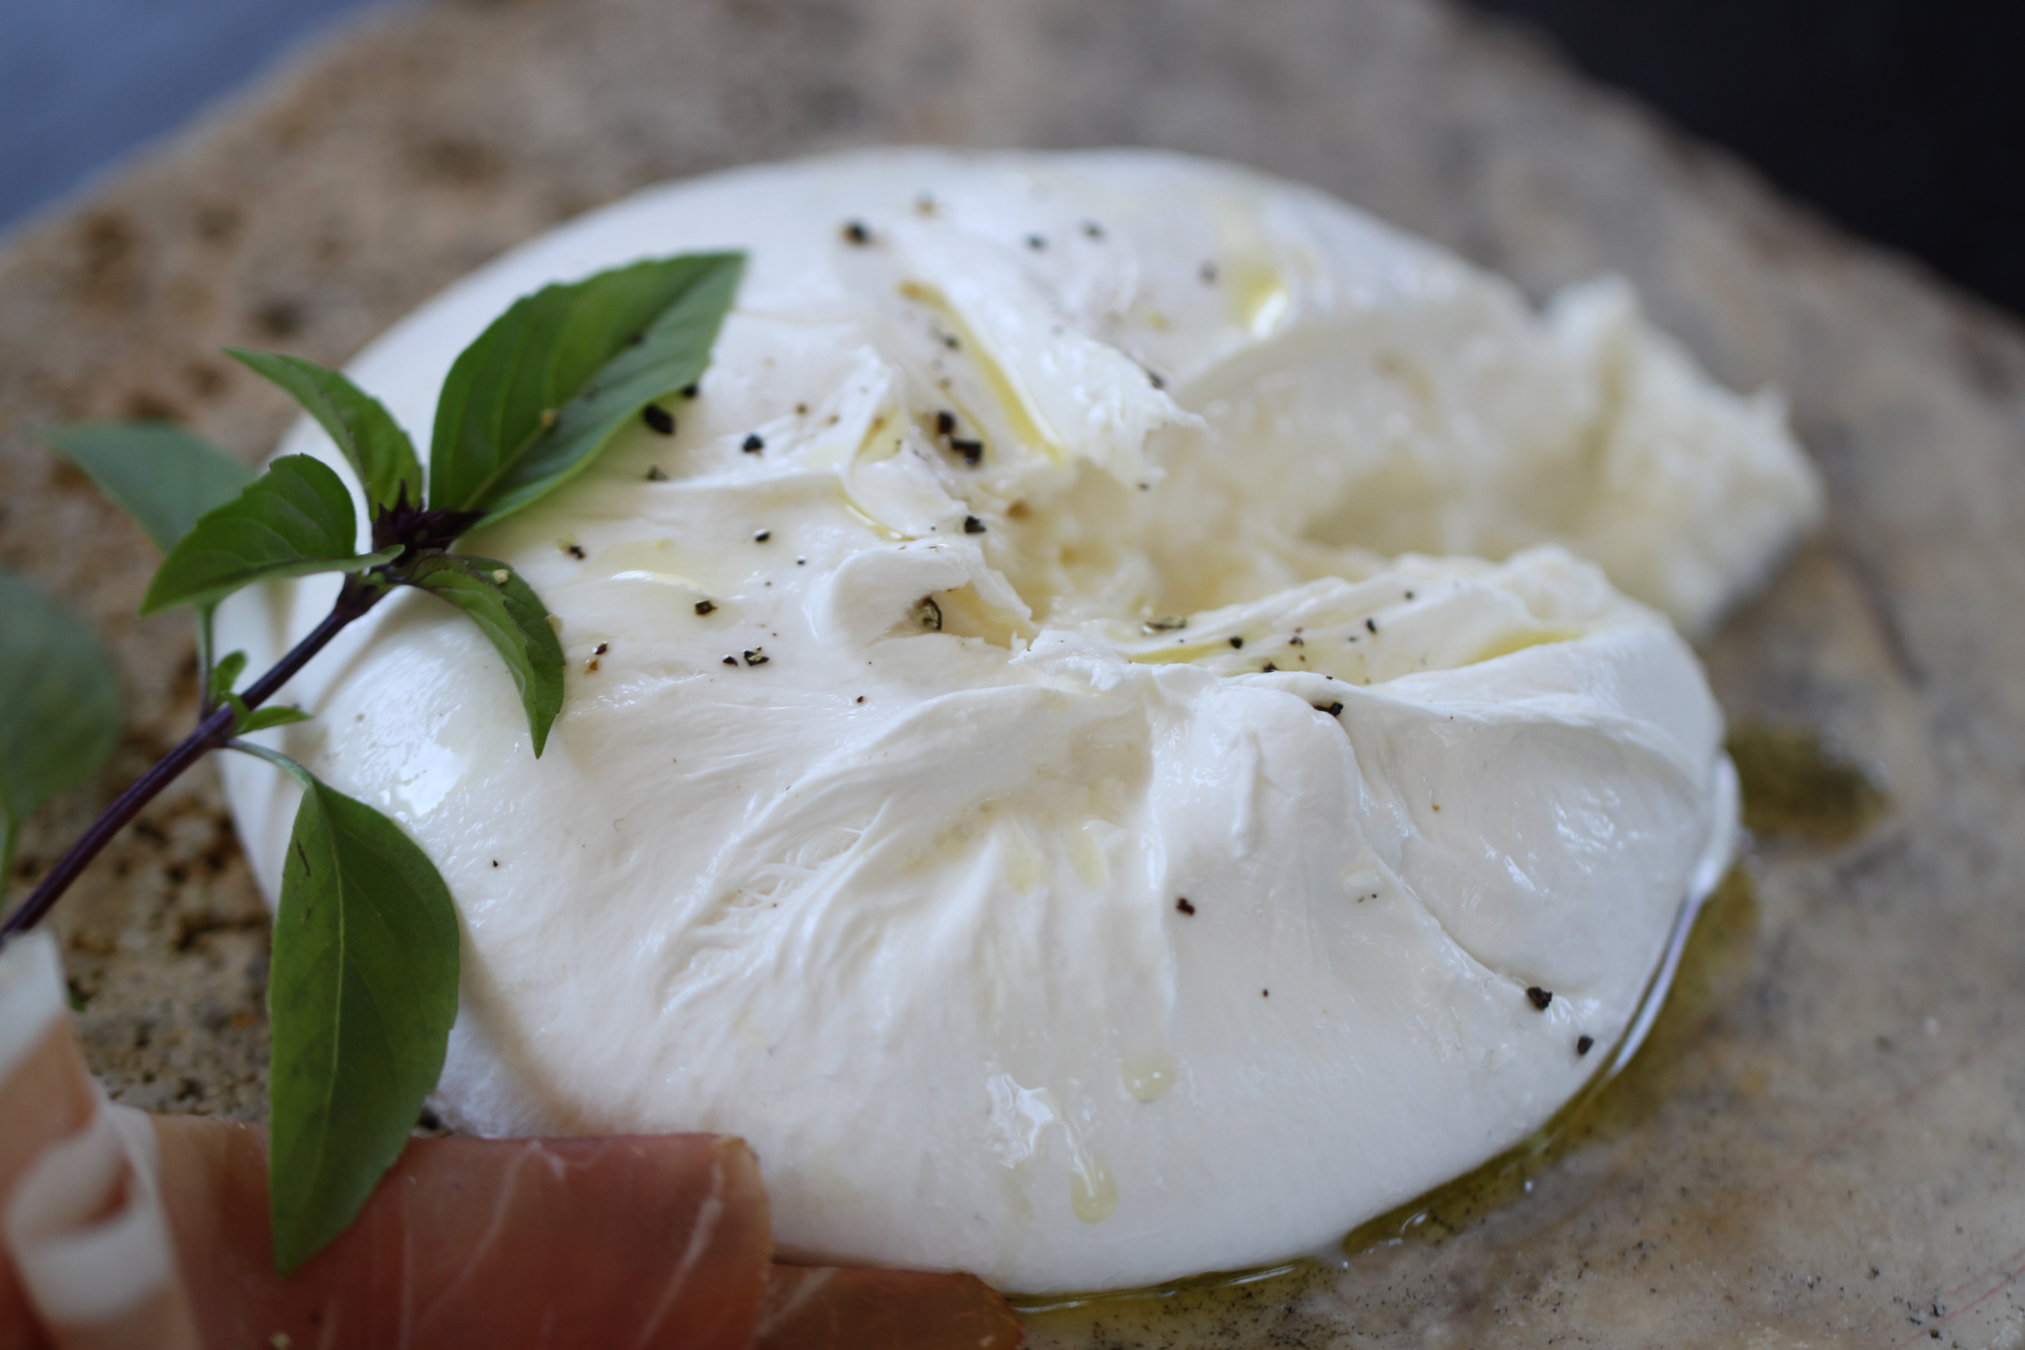 Where to get locally made burrata in california kcet - Comment manger la burrata ...